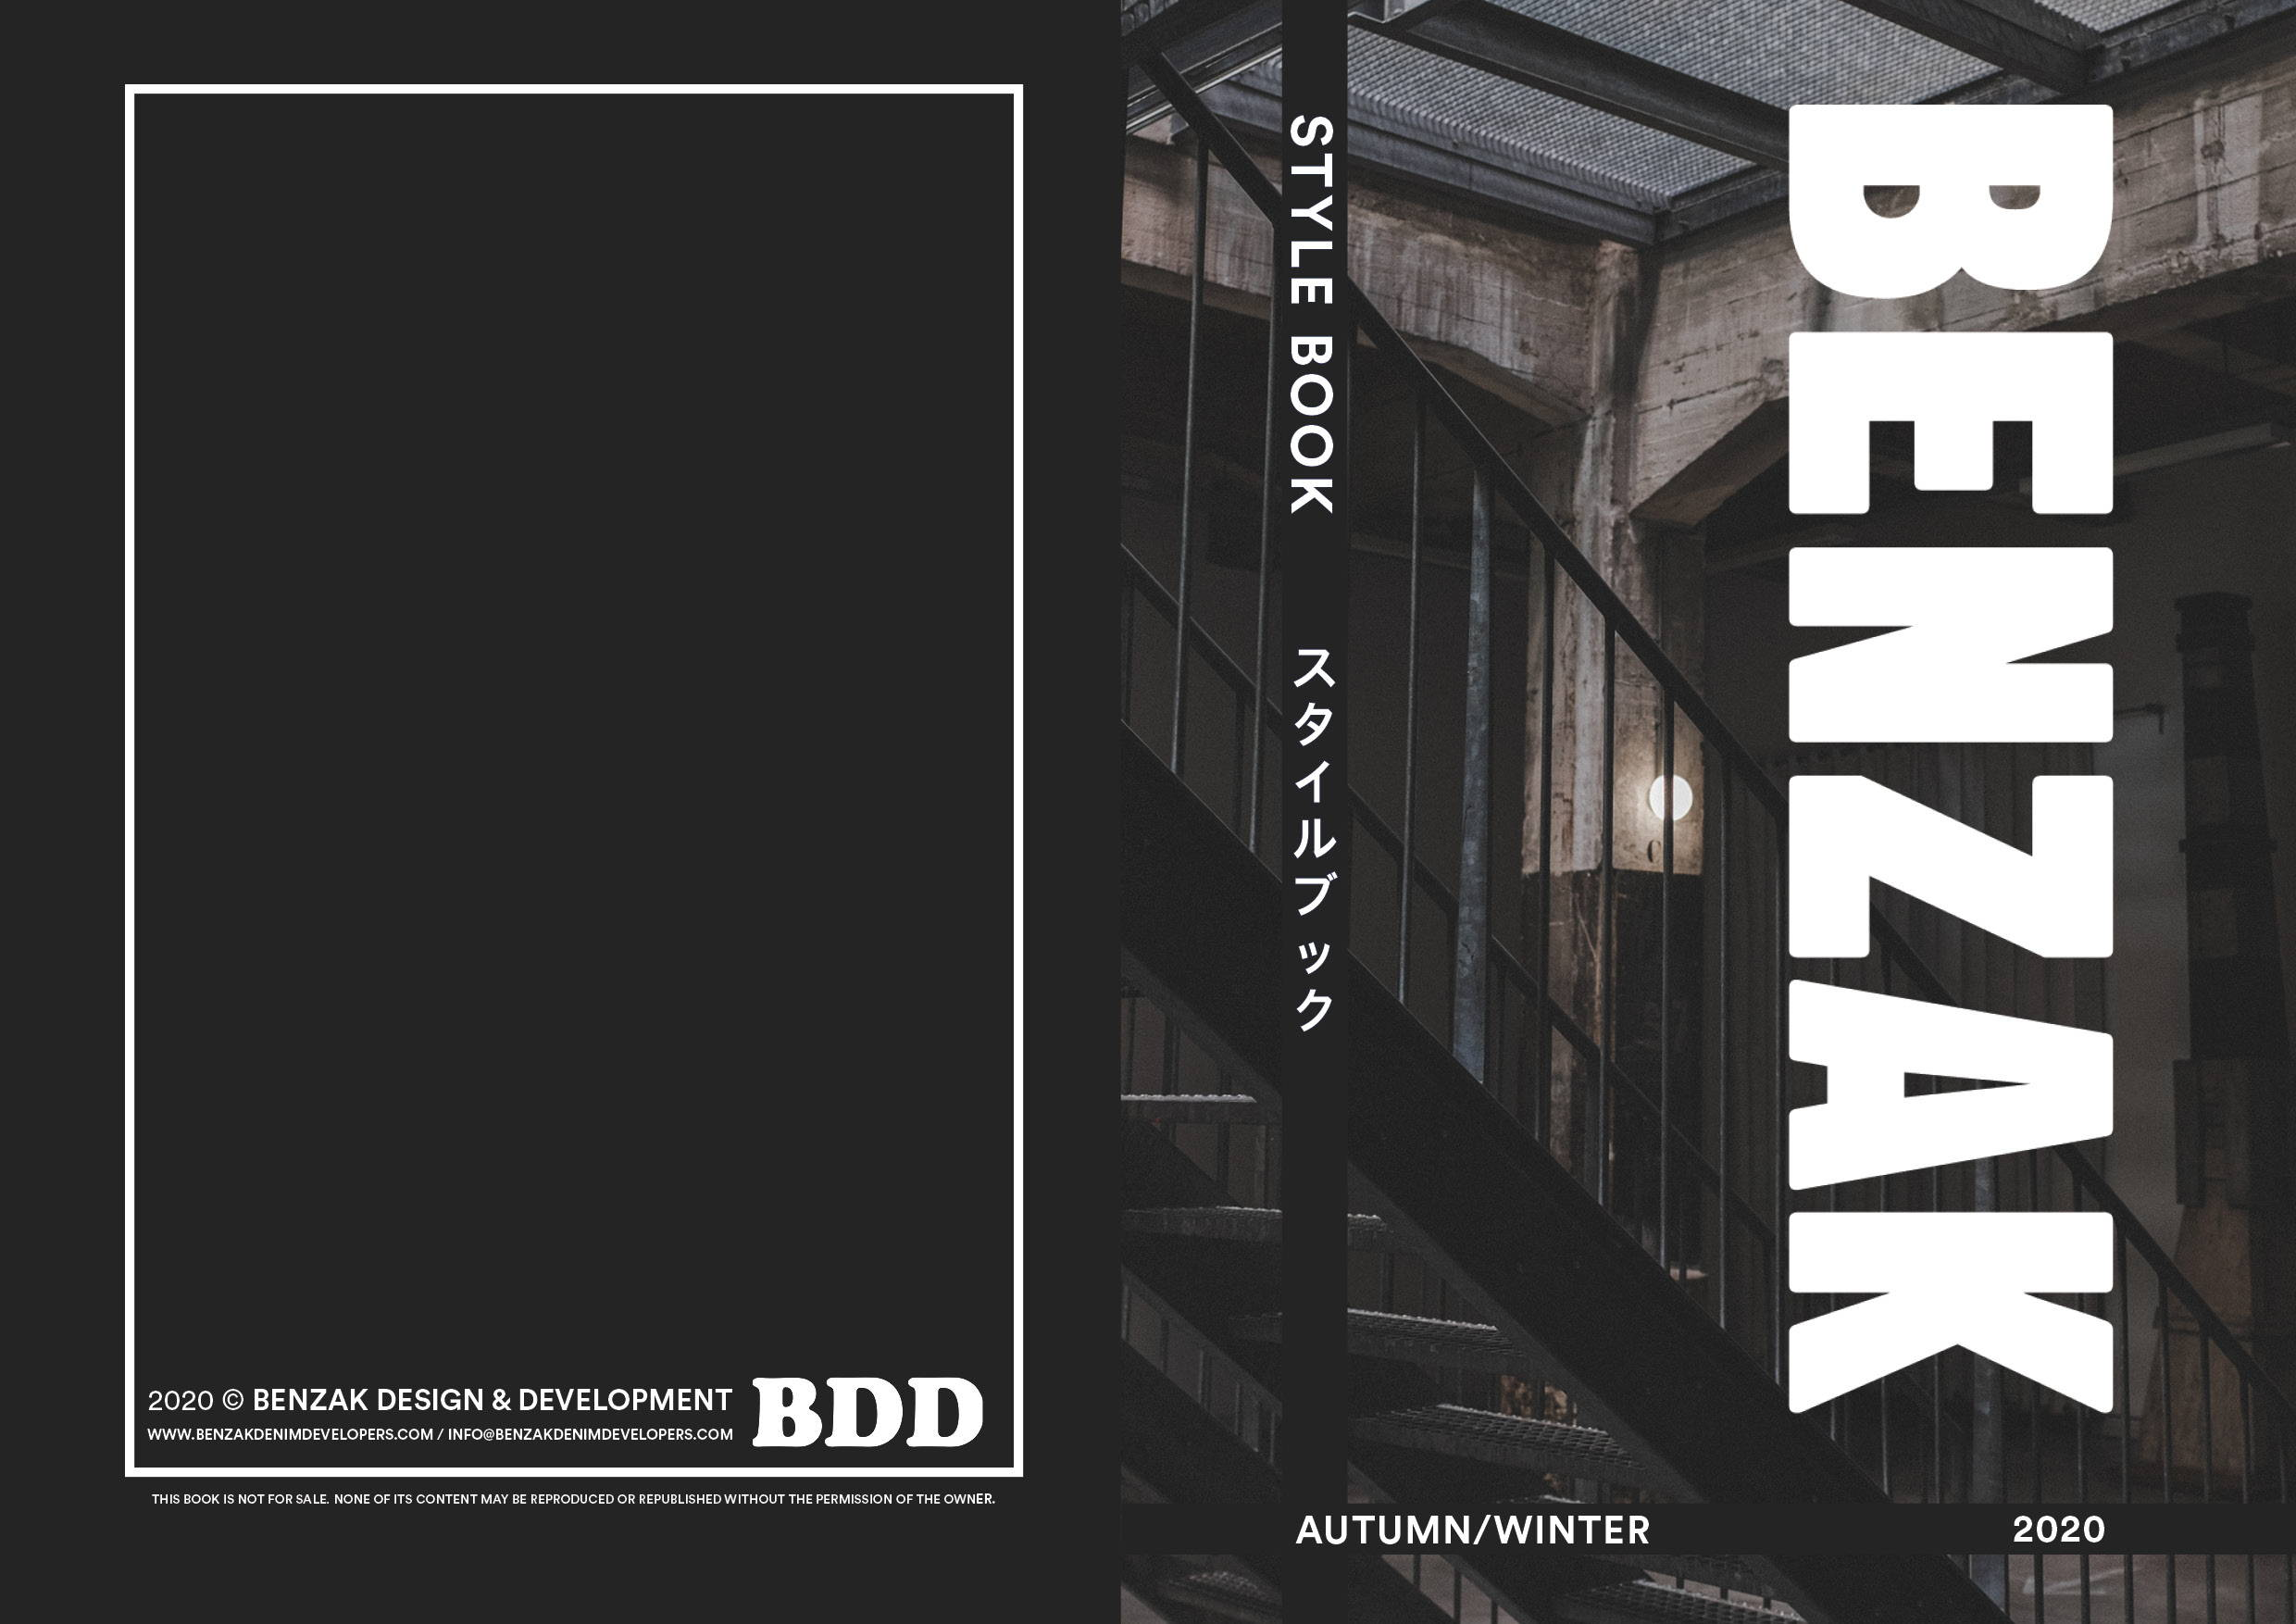 benzak denim developers AW20 stylebook | autumn winter 2020 | fall winter 2020 | collection lookbook